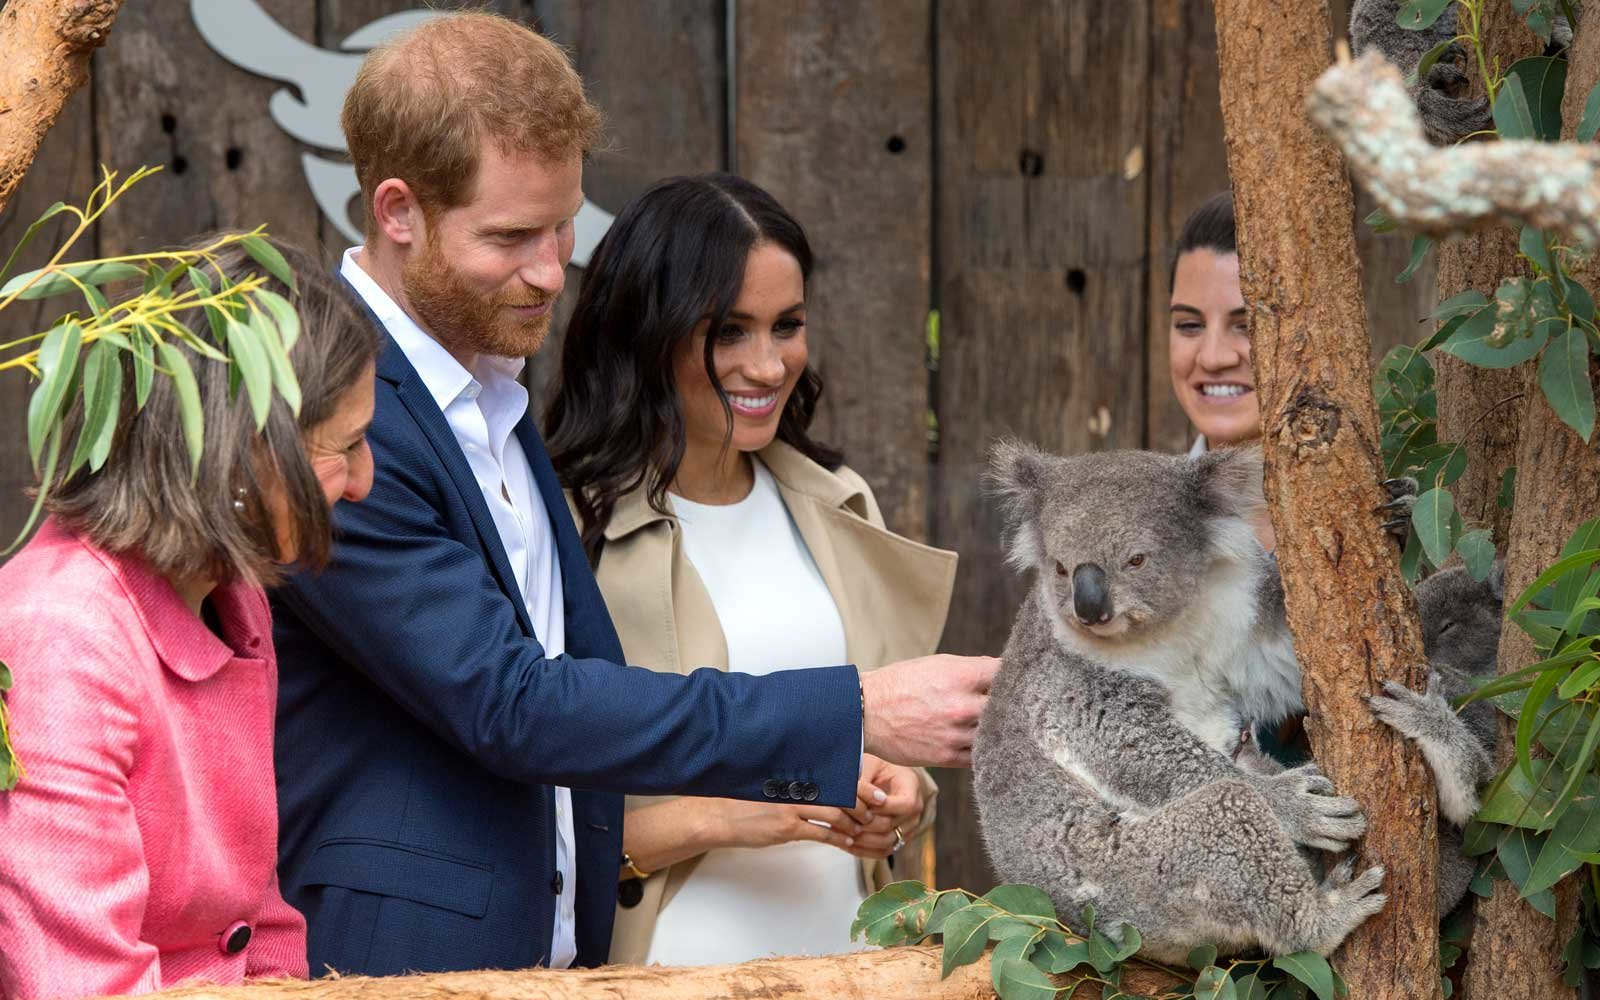 Prince Harry And Meghan Markle Confirm They're Expecting Their First Baby